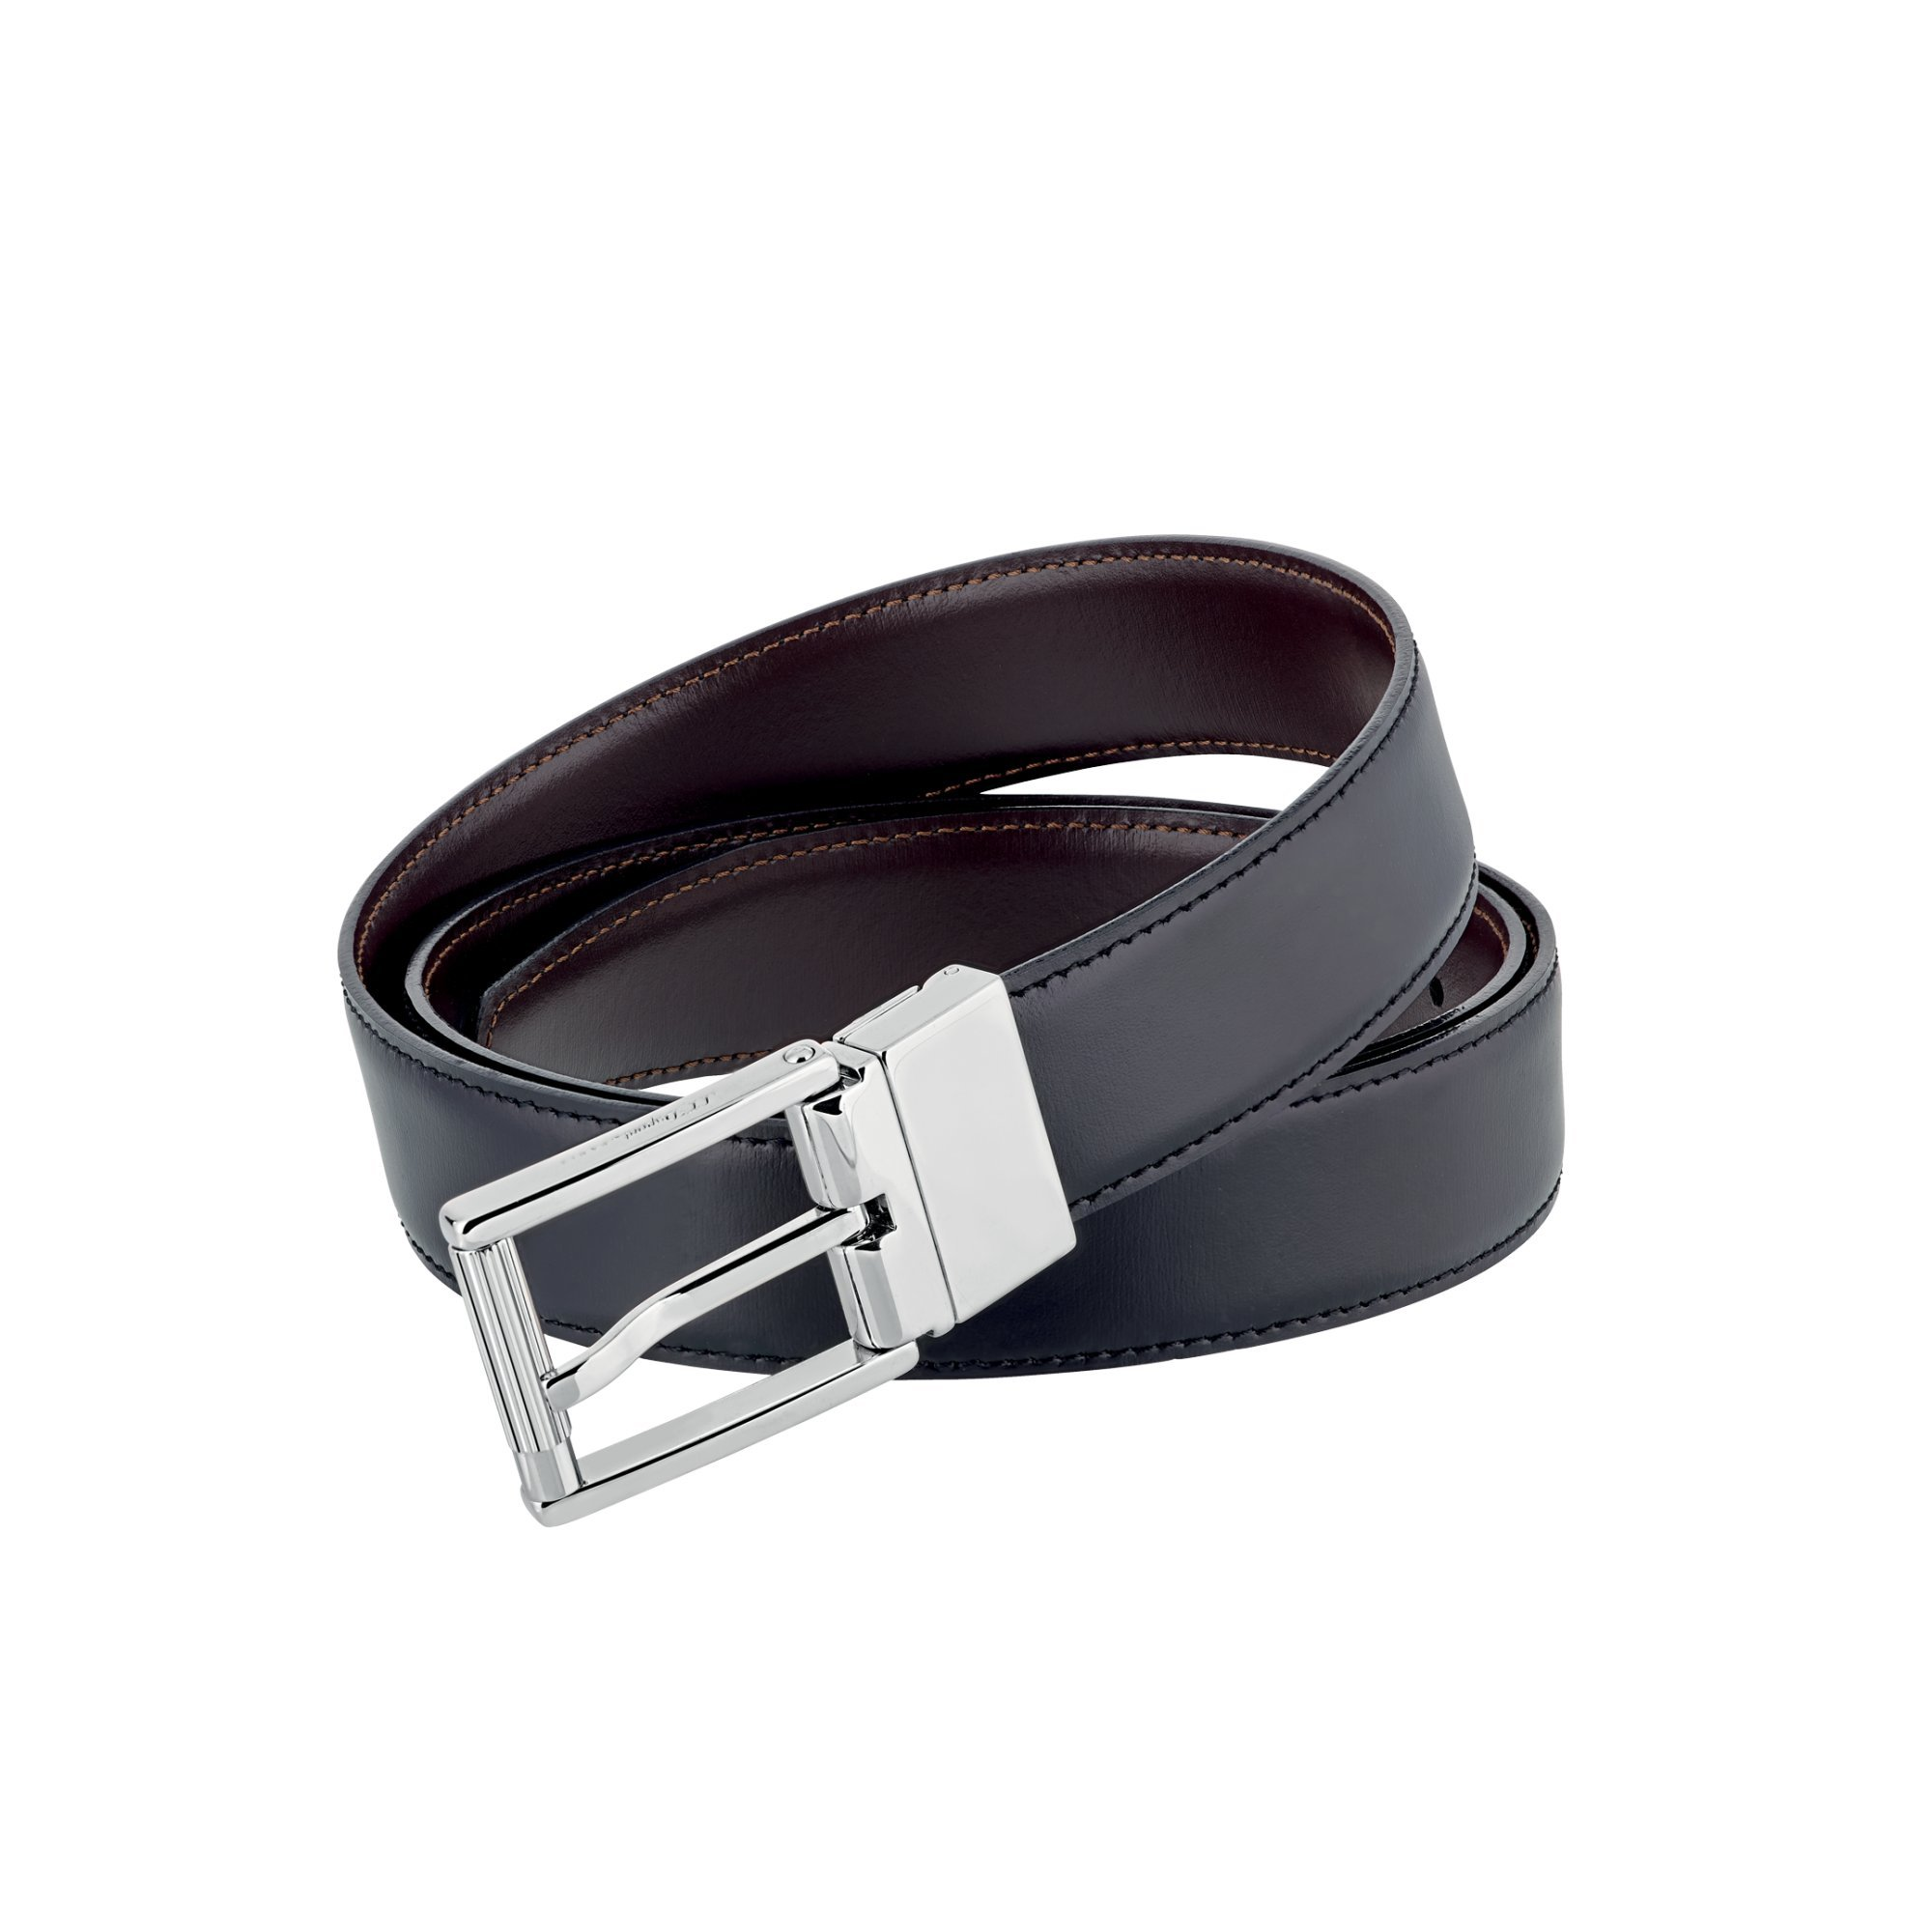 S.T. Dupont 9540120 Palladium Finish Auto-Reversible Business Belt